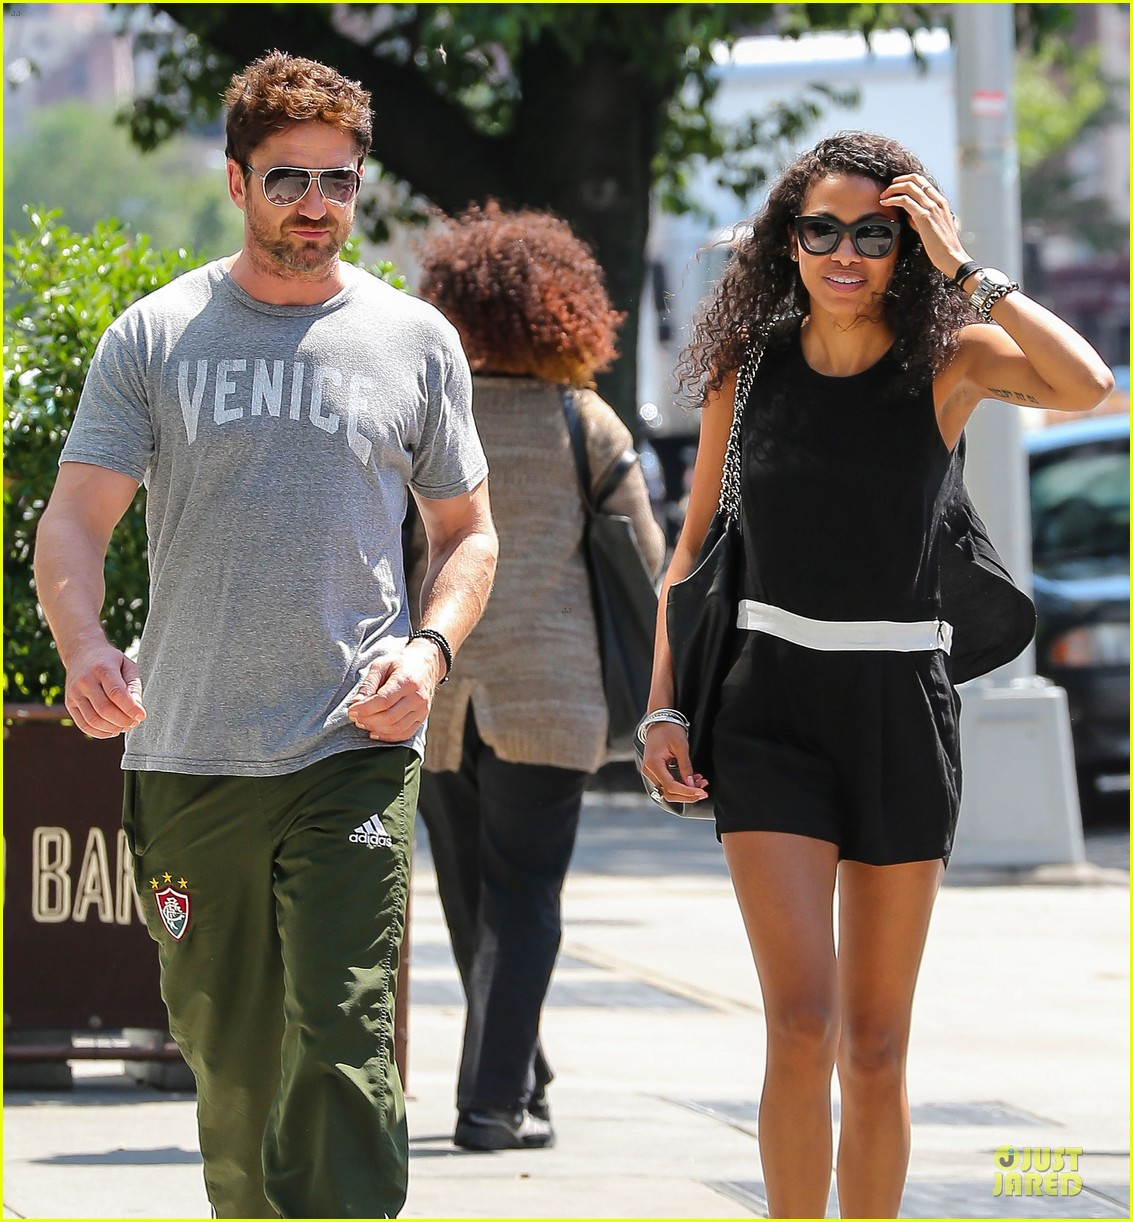 gerard butler venice on stroll with mystery woman 043136748